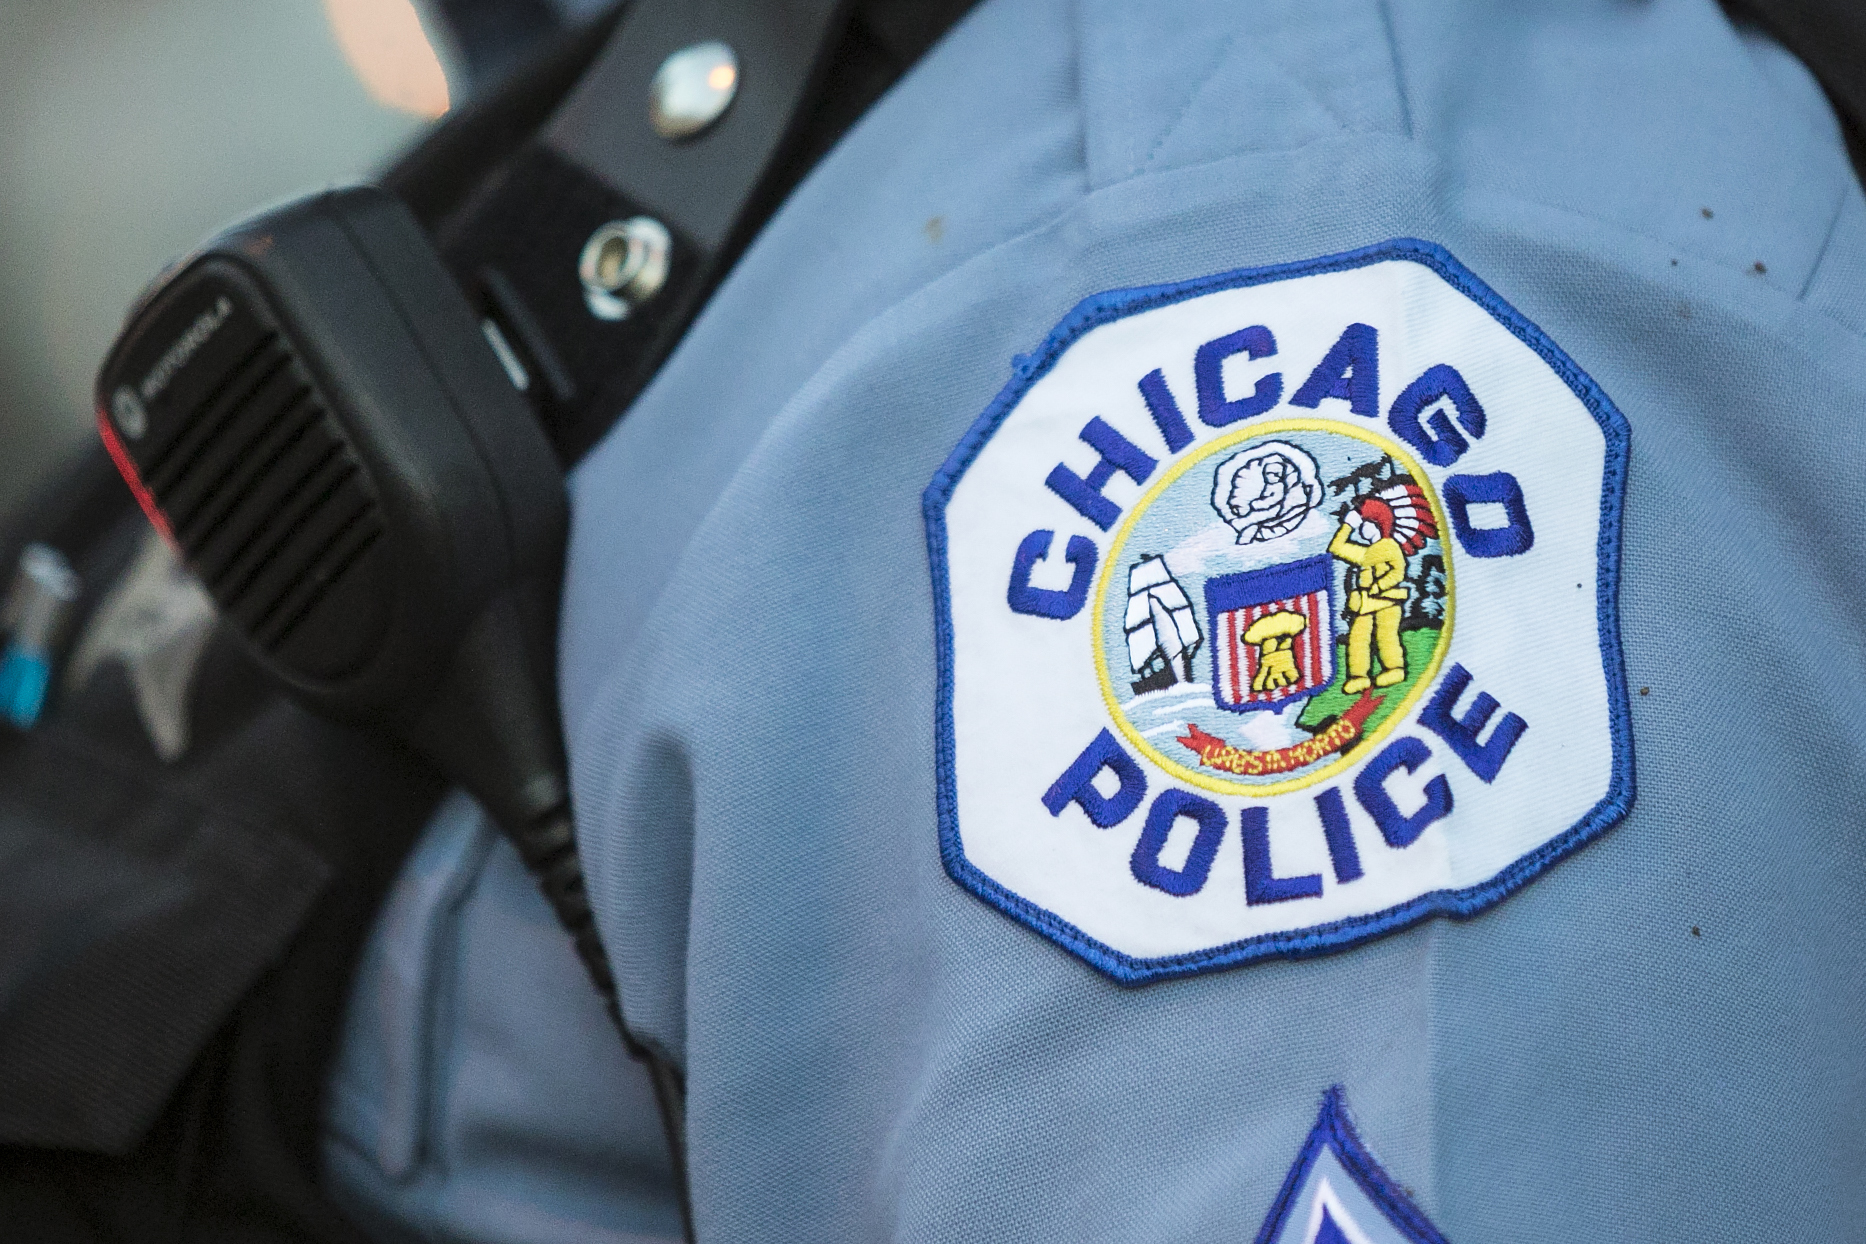 Multiple houses were burglarized in September and October in Morgan Park on the South Side.